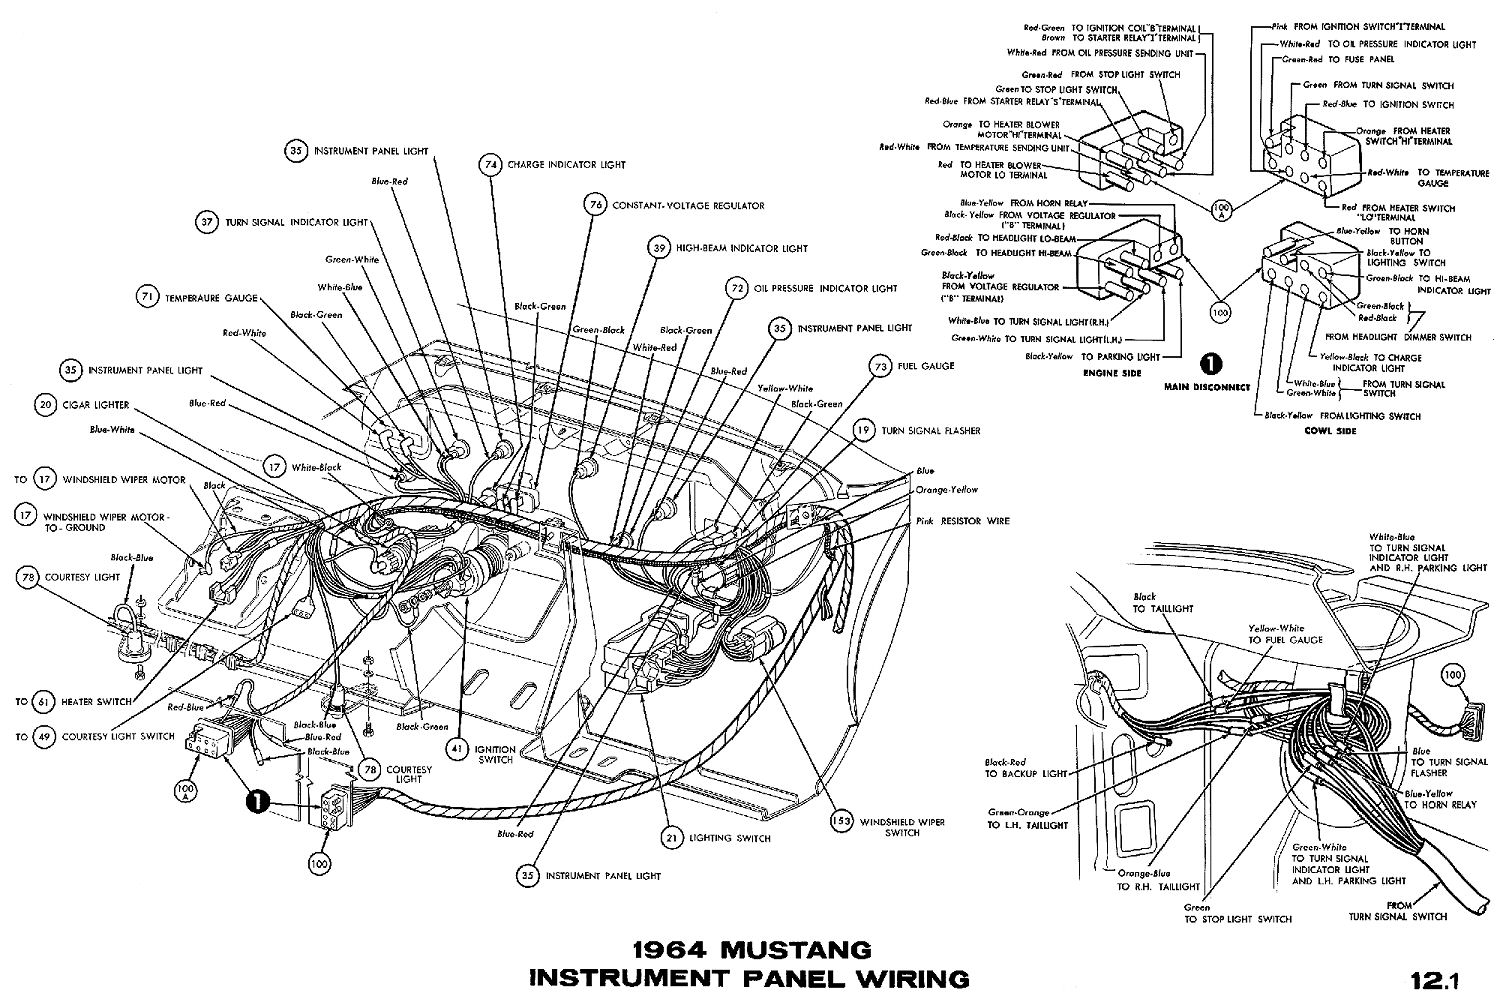 1964b 1964 mustang wiring diagrams average joe restoration Ford 4600 Wiring Schematic at nearapp.co